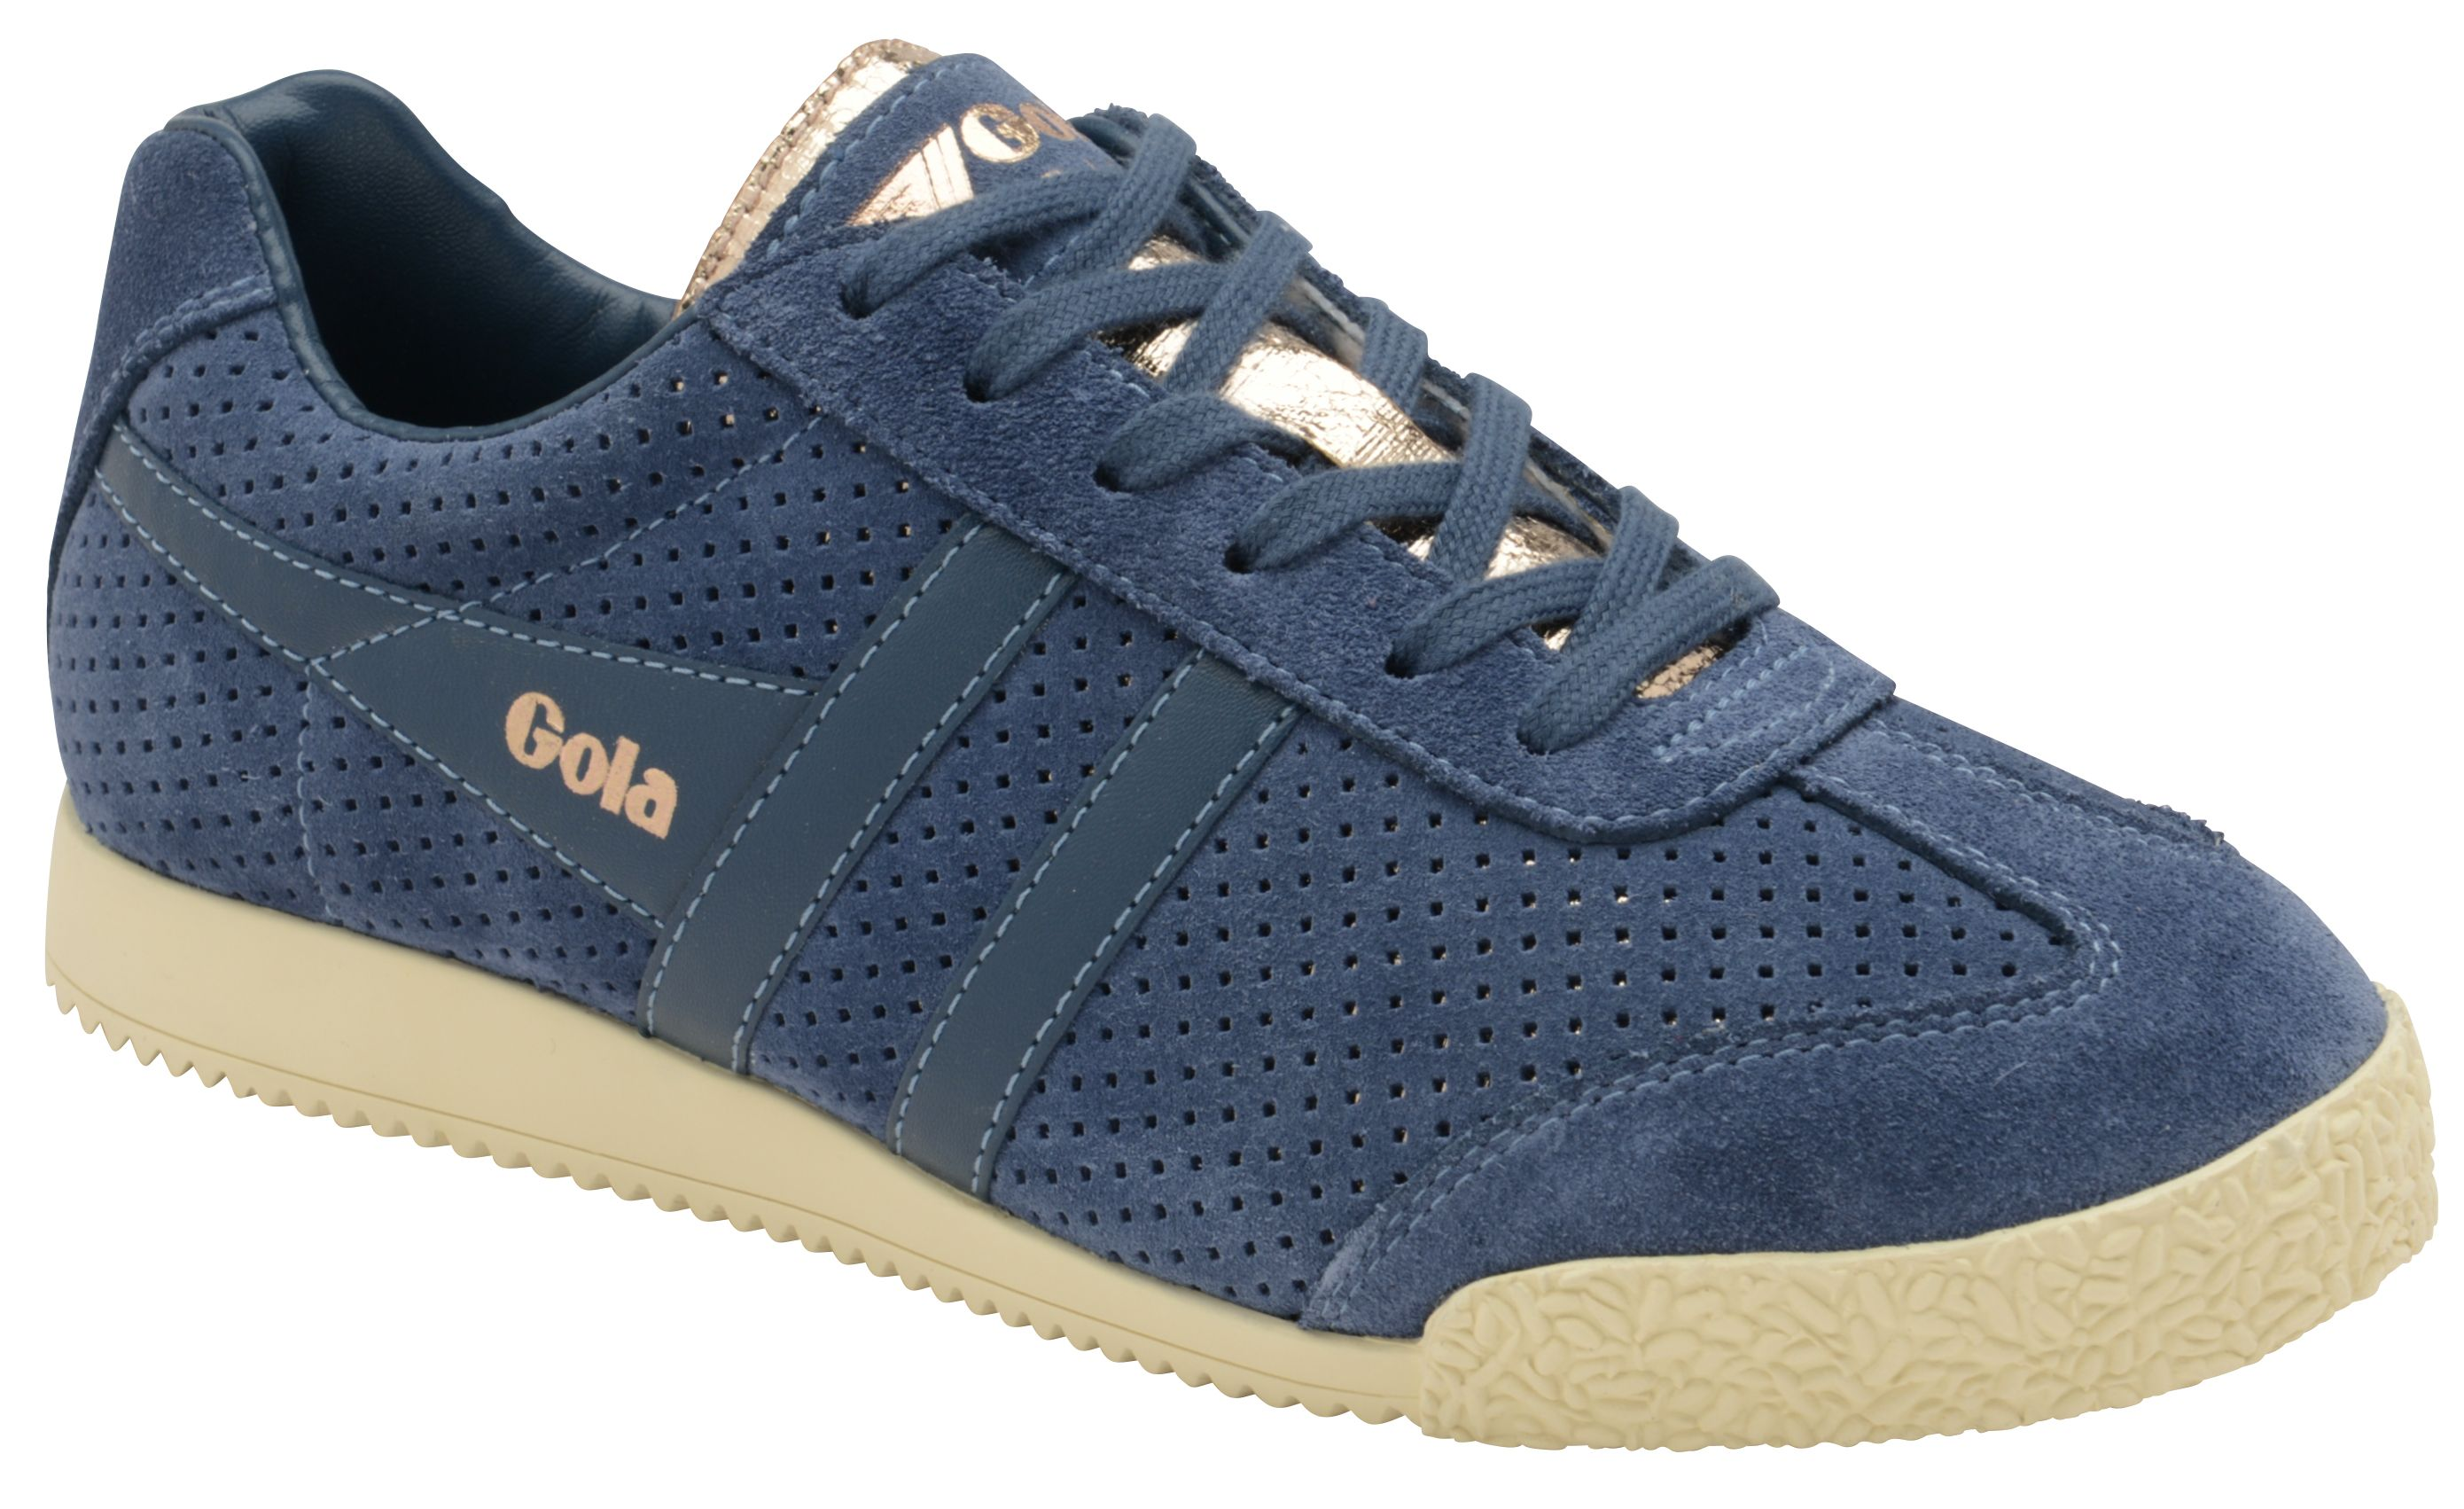 Gola Harrier Glimmer Suede Trainers, Baltic Blue